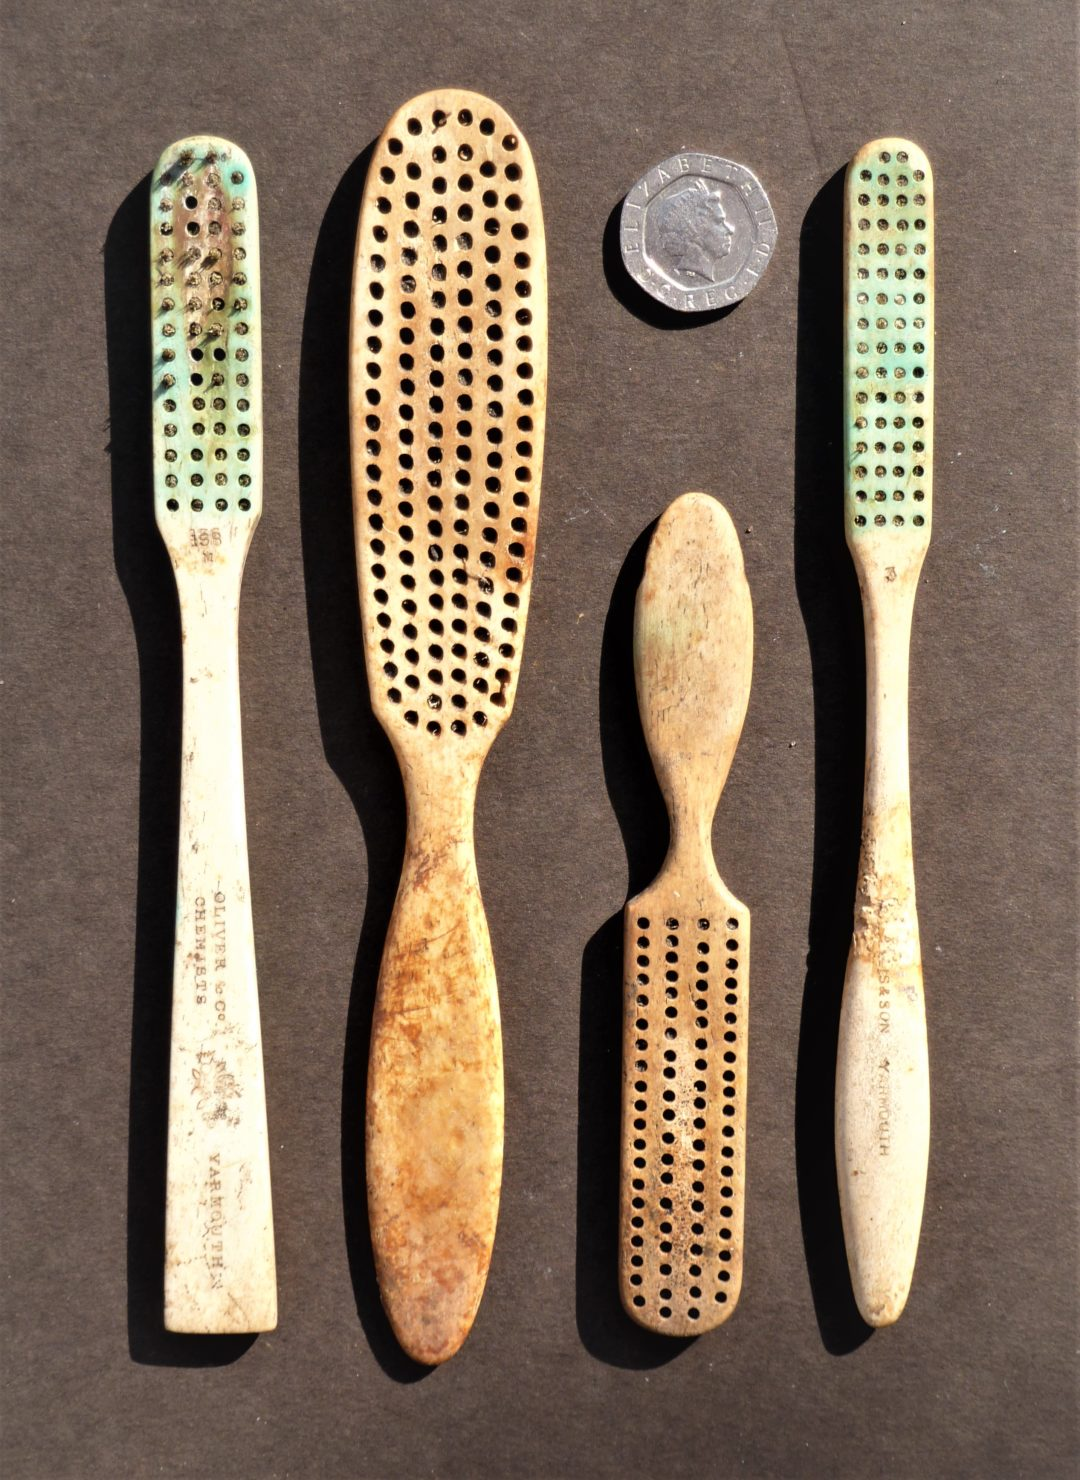 Toothbrushes and grooming brushes